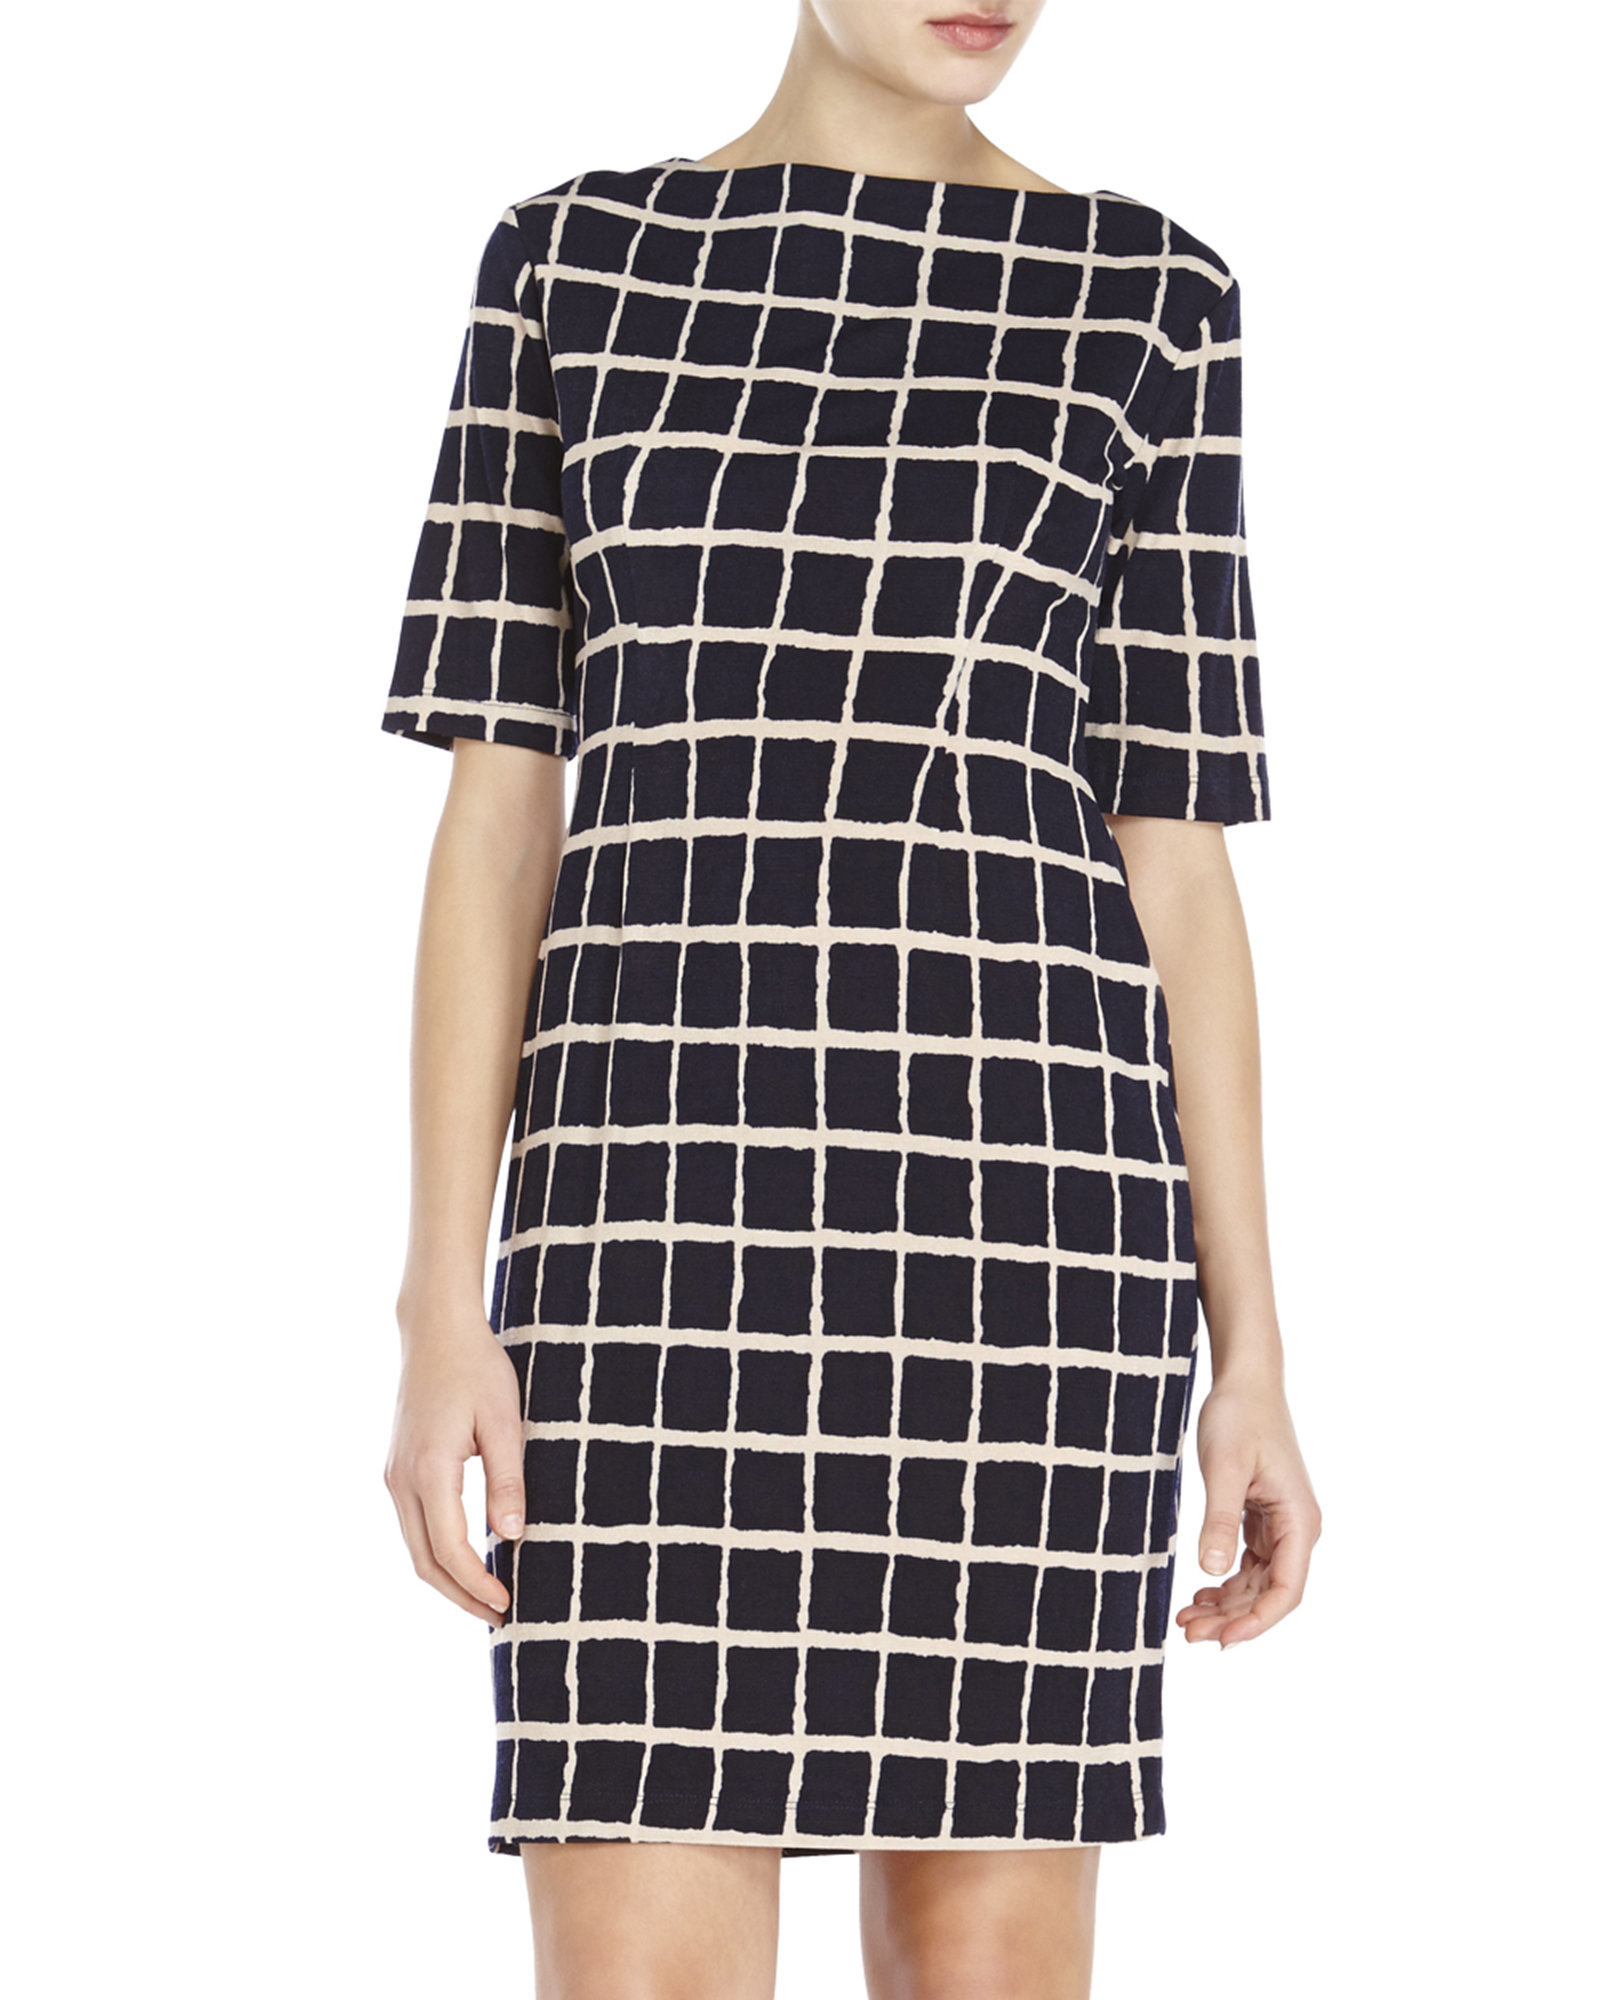 Connected Apparel Petite Grid Print Dress In Black Lyst